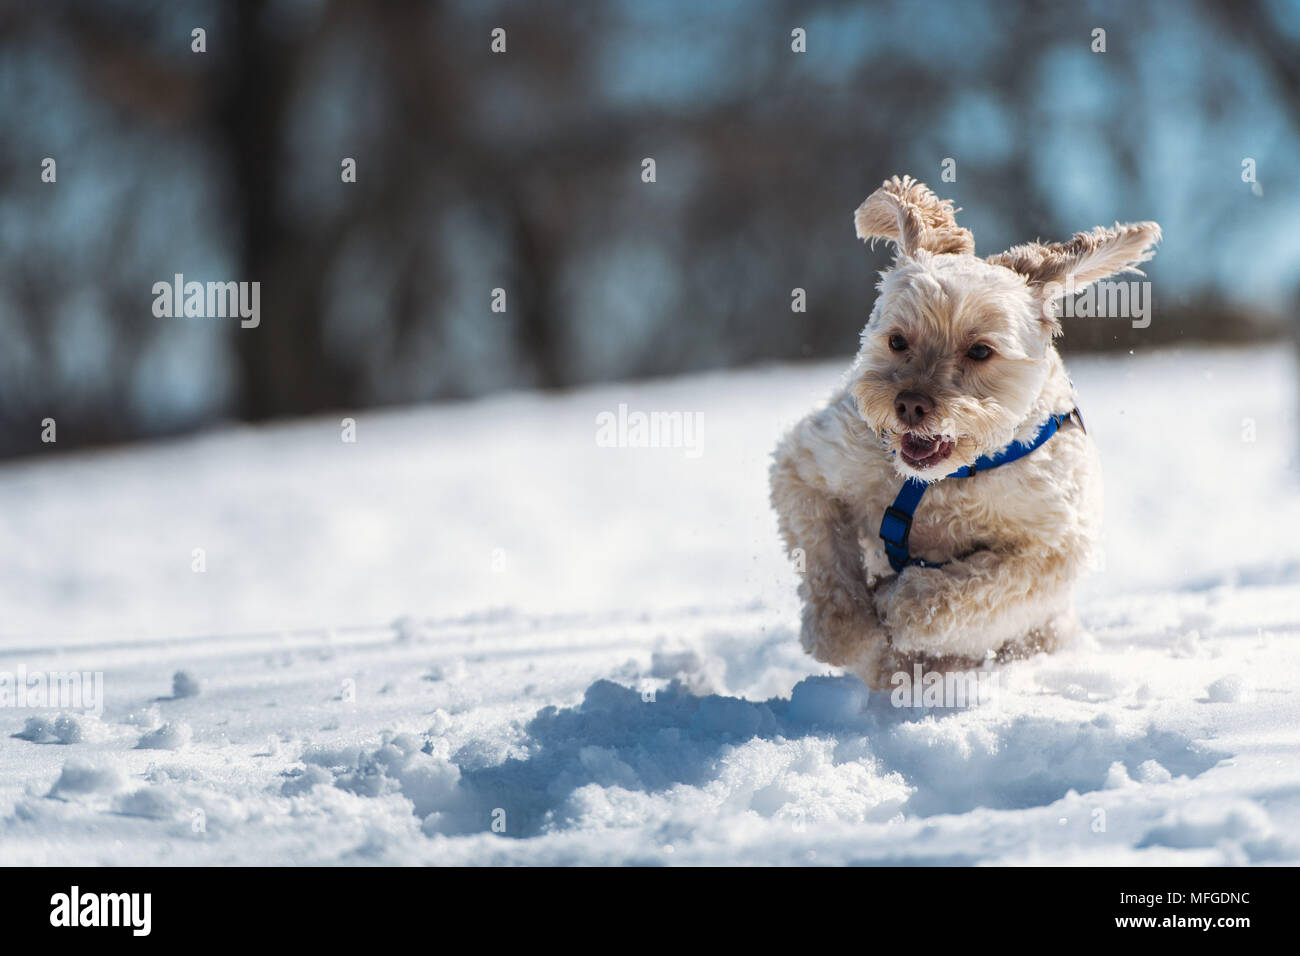 A dog running in the snow at the Arnold Arboretum Of Harvard